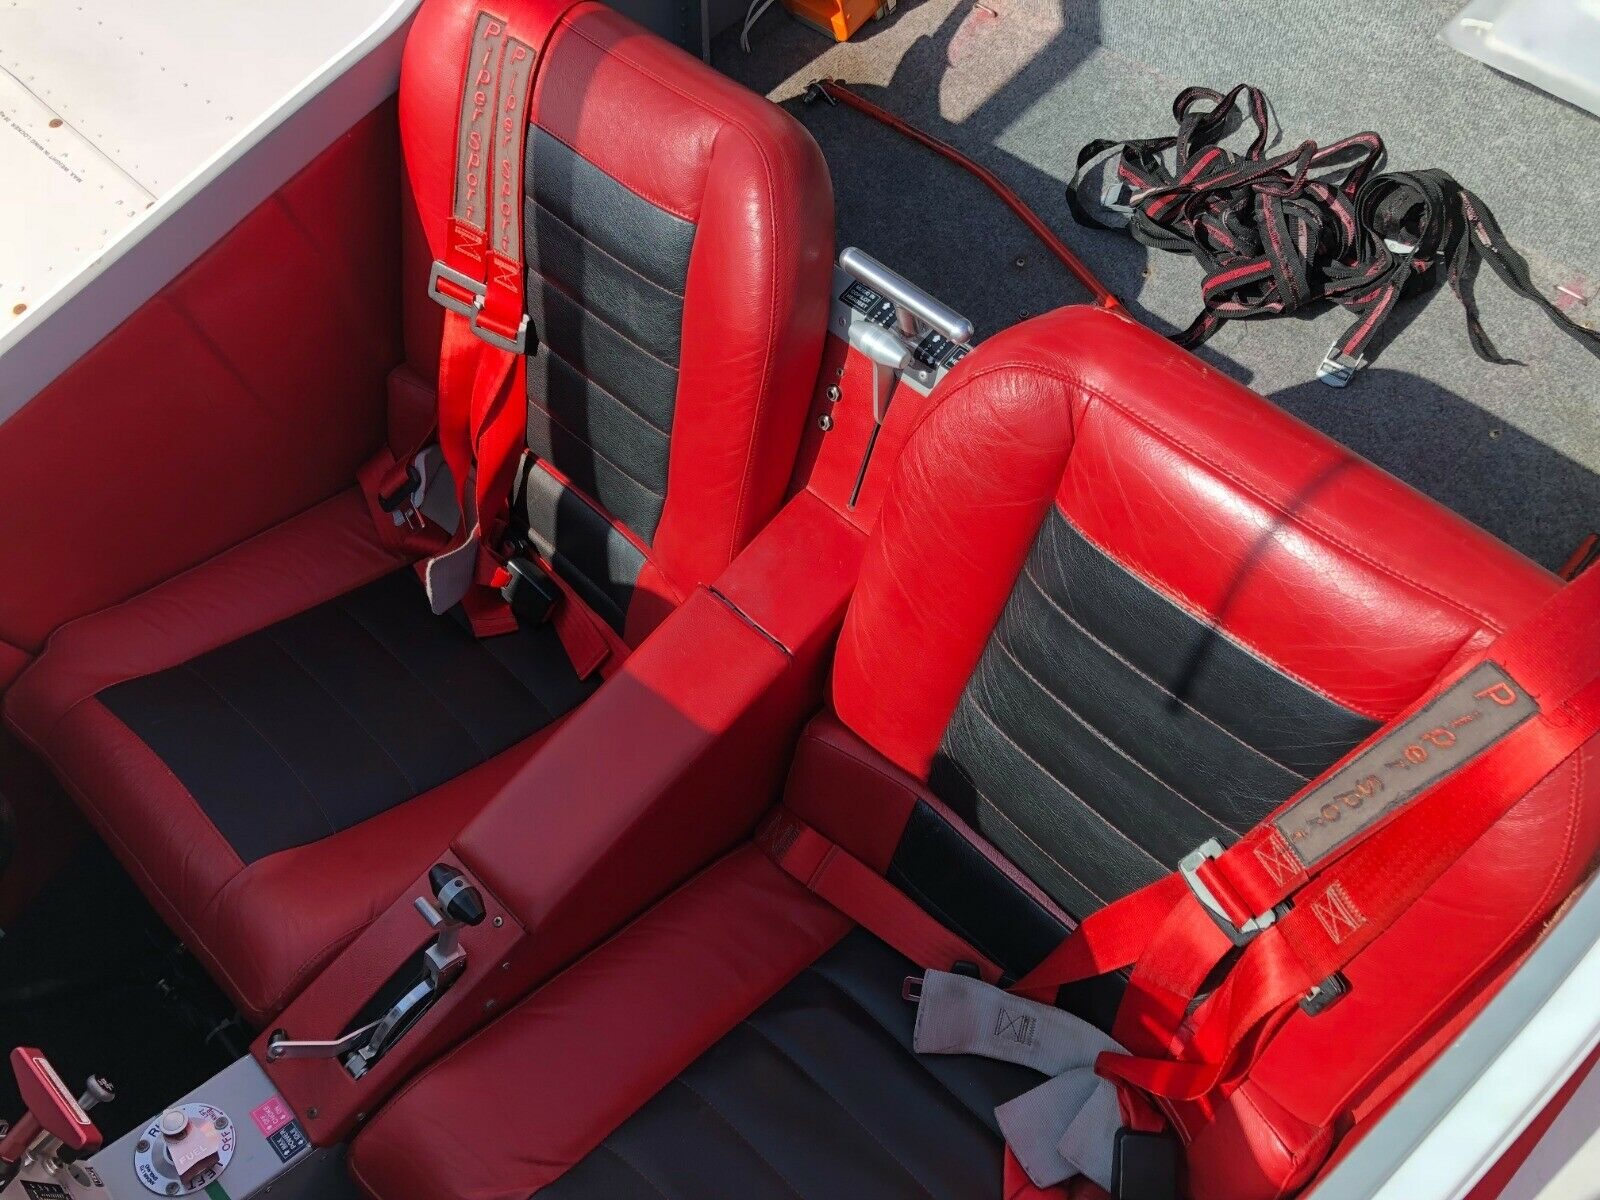 new engine 2010 Pipersport aircraft